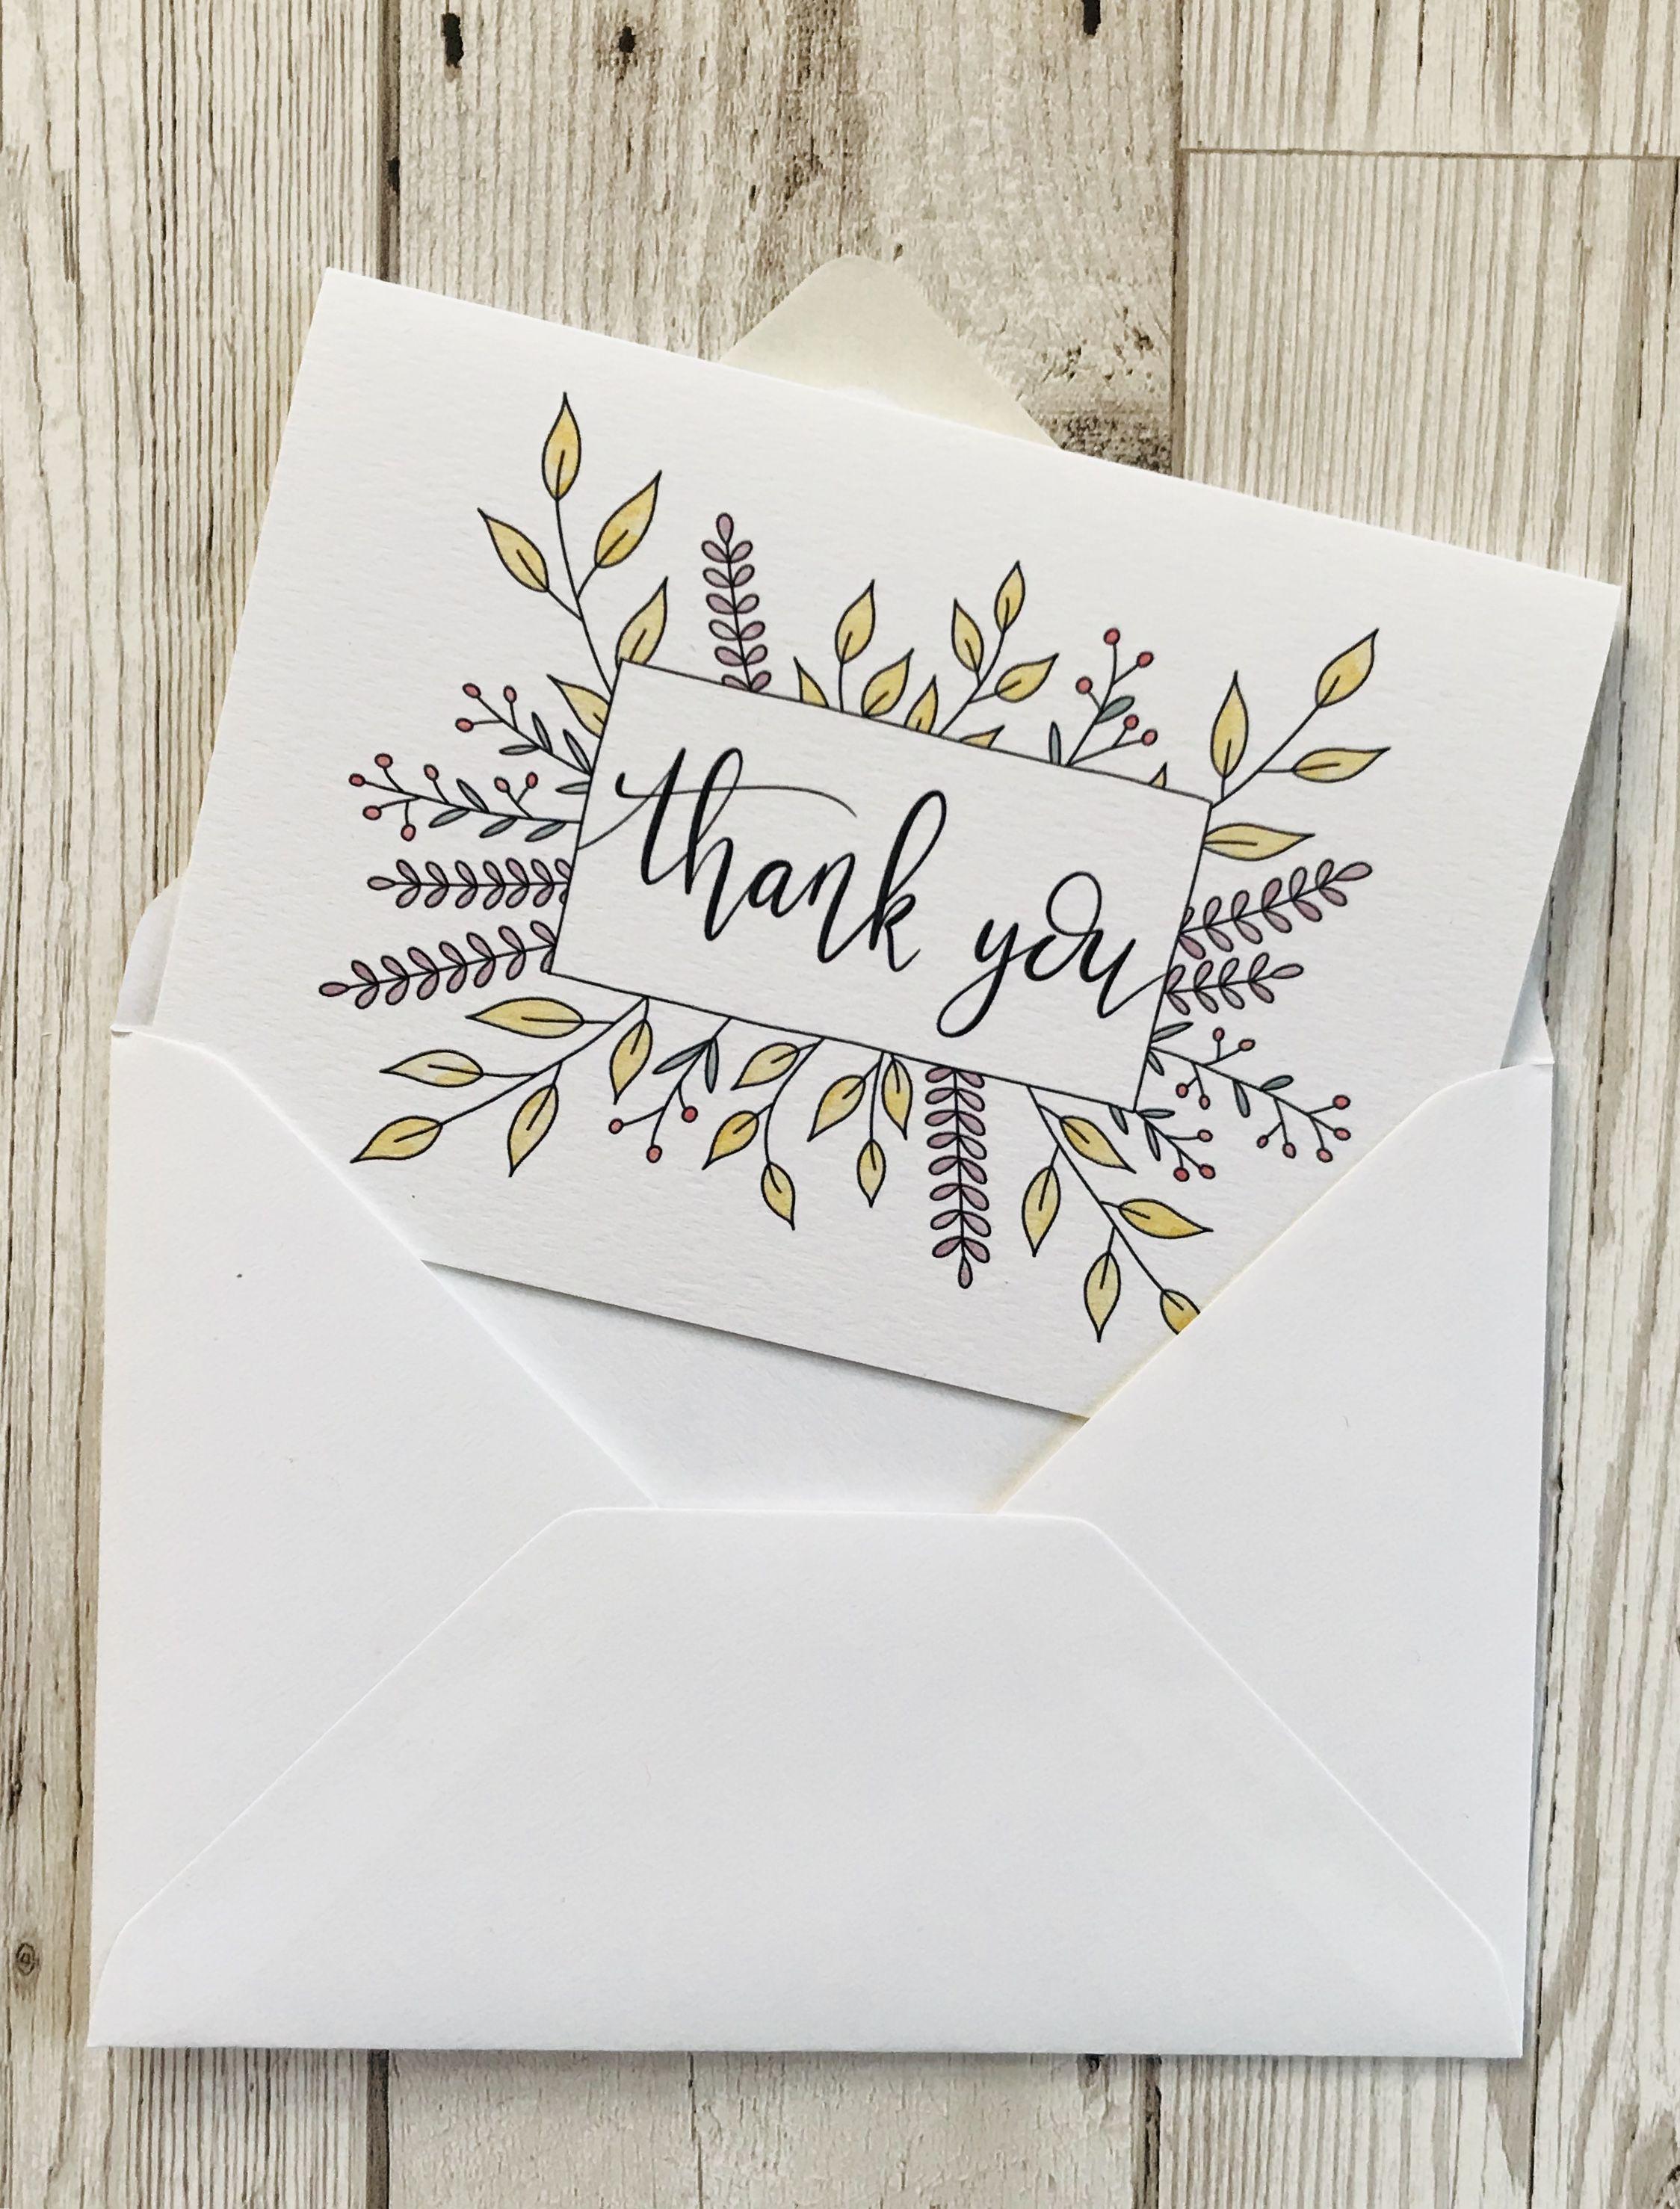 Wedding thank you cards Hand lettered floral thank you cards suitable for wedding thank you notes or any other special occasion Eco friendly too